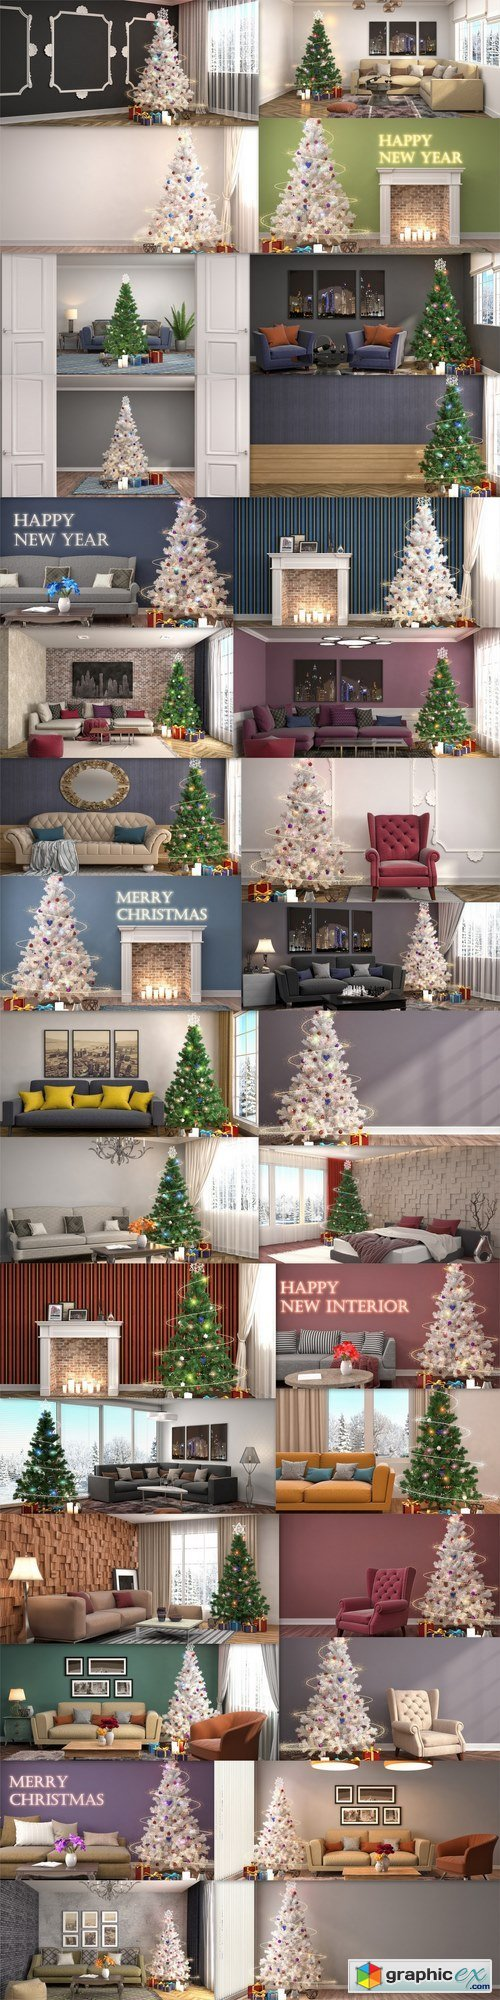 Homemade Christmas design apartments, rooms, houses 5